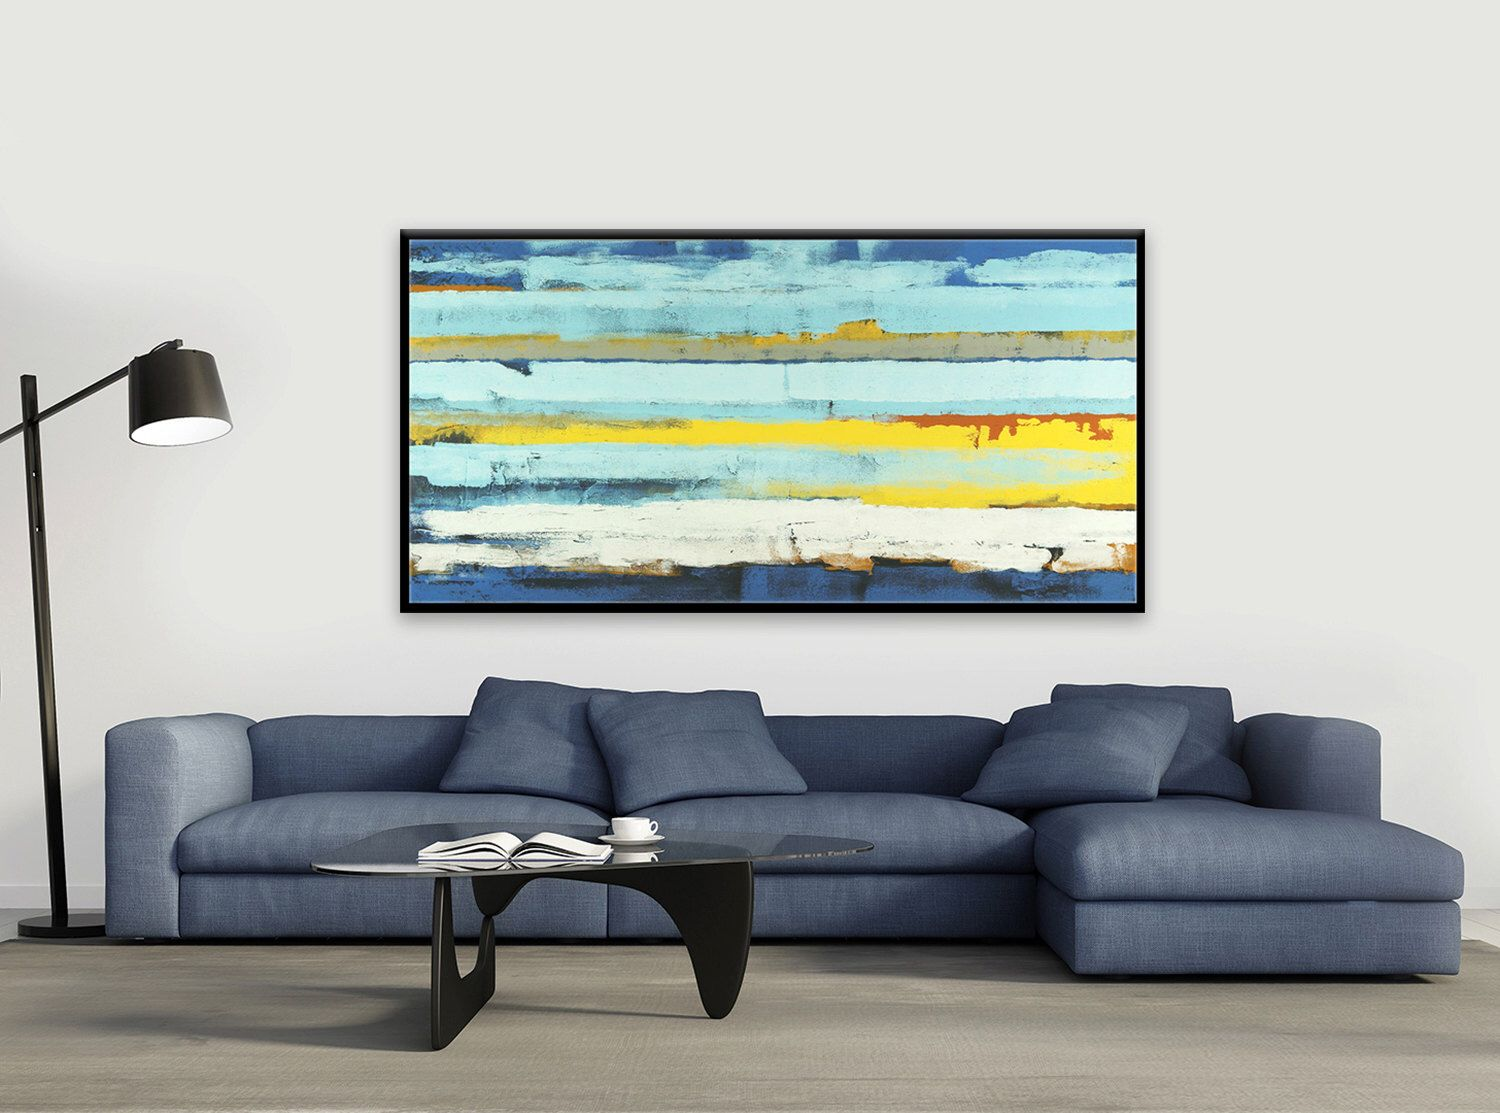 "ABSTRACT  Painting  Large abstract   Original painting Acrylic painting   Contemporary Fine Art  48"" X 24"" Free Shipping by ARTbyLESTstudio on Etsy https://www.etsy.com/listing/180601568/abstract-painting-large-abstract"